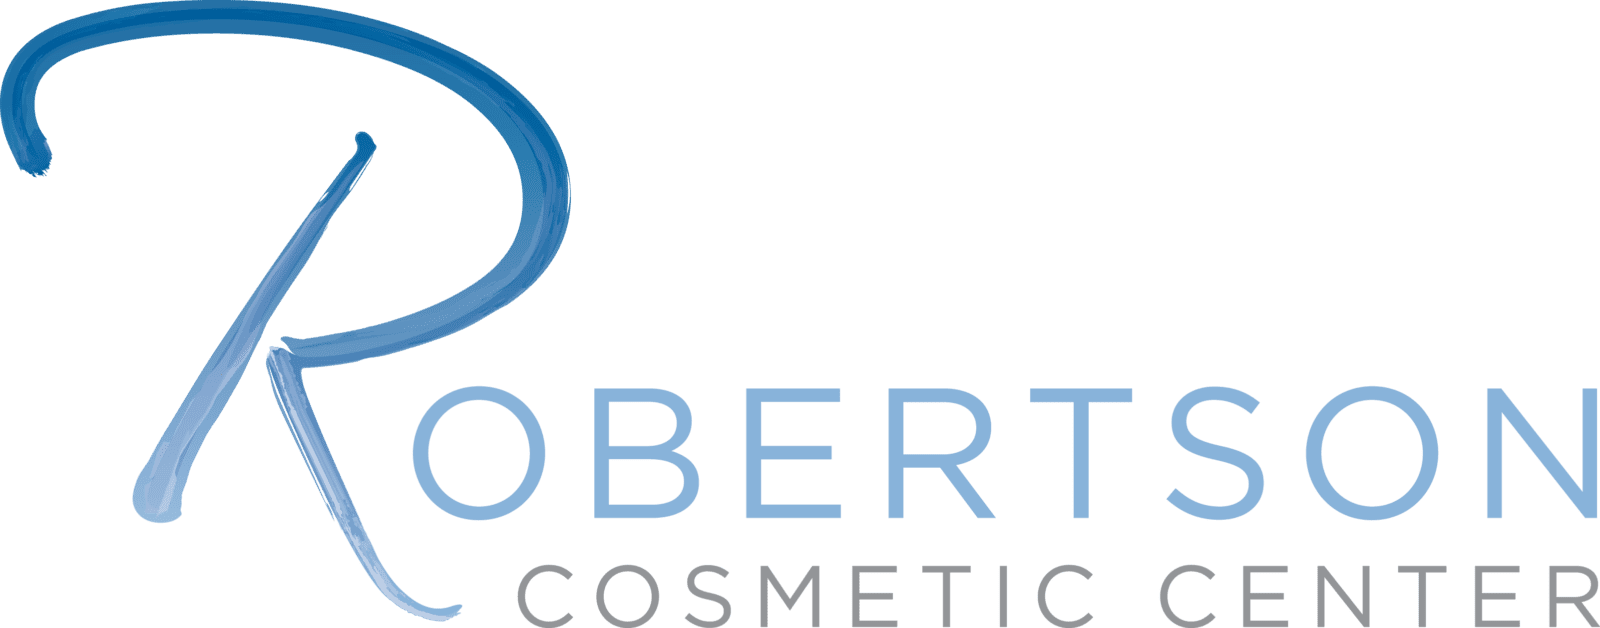 Robertson Cosmetic Center logo